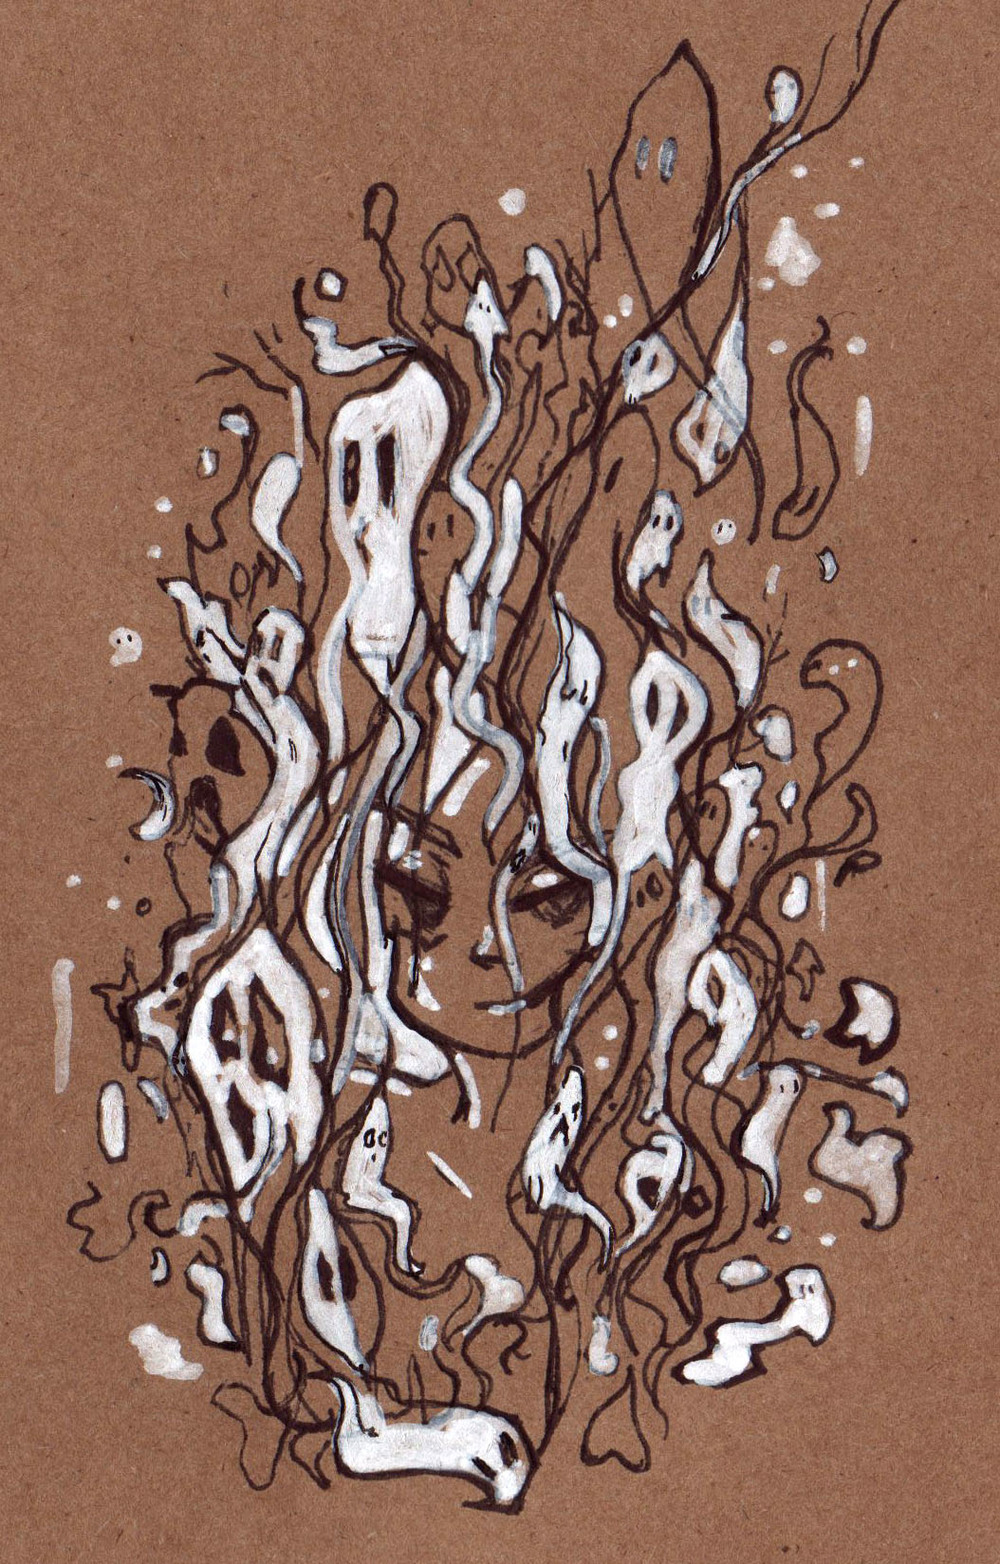 Prismacolor ink pens and white paint marker on toned kraft paper